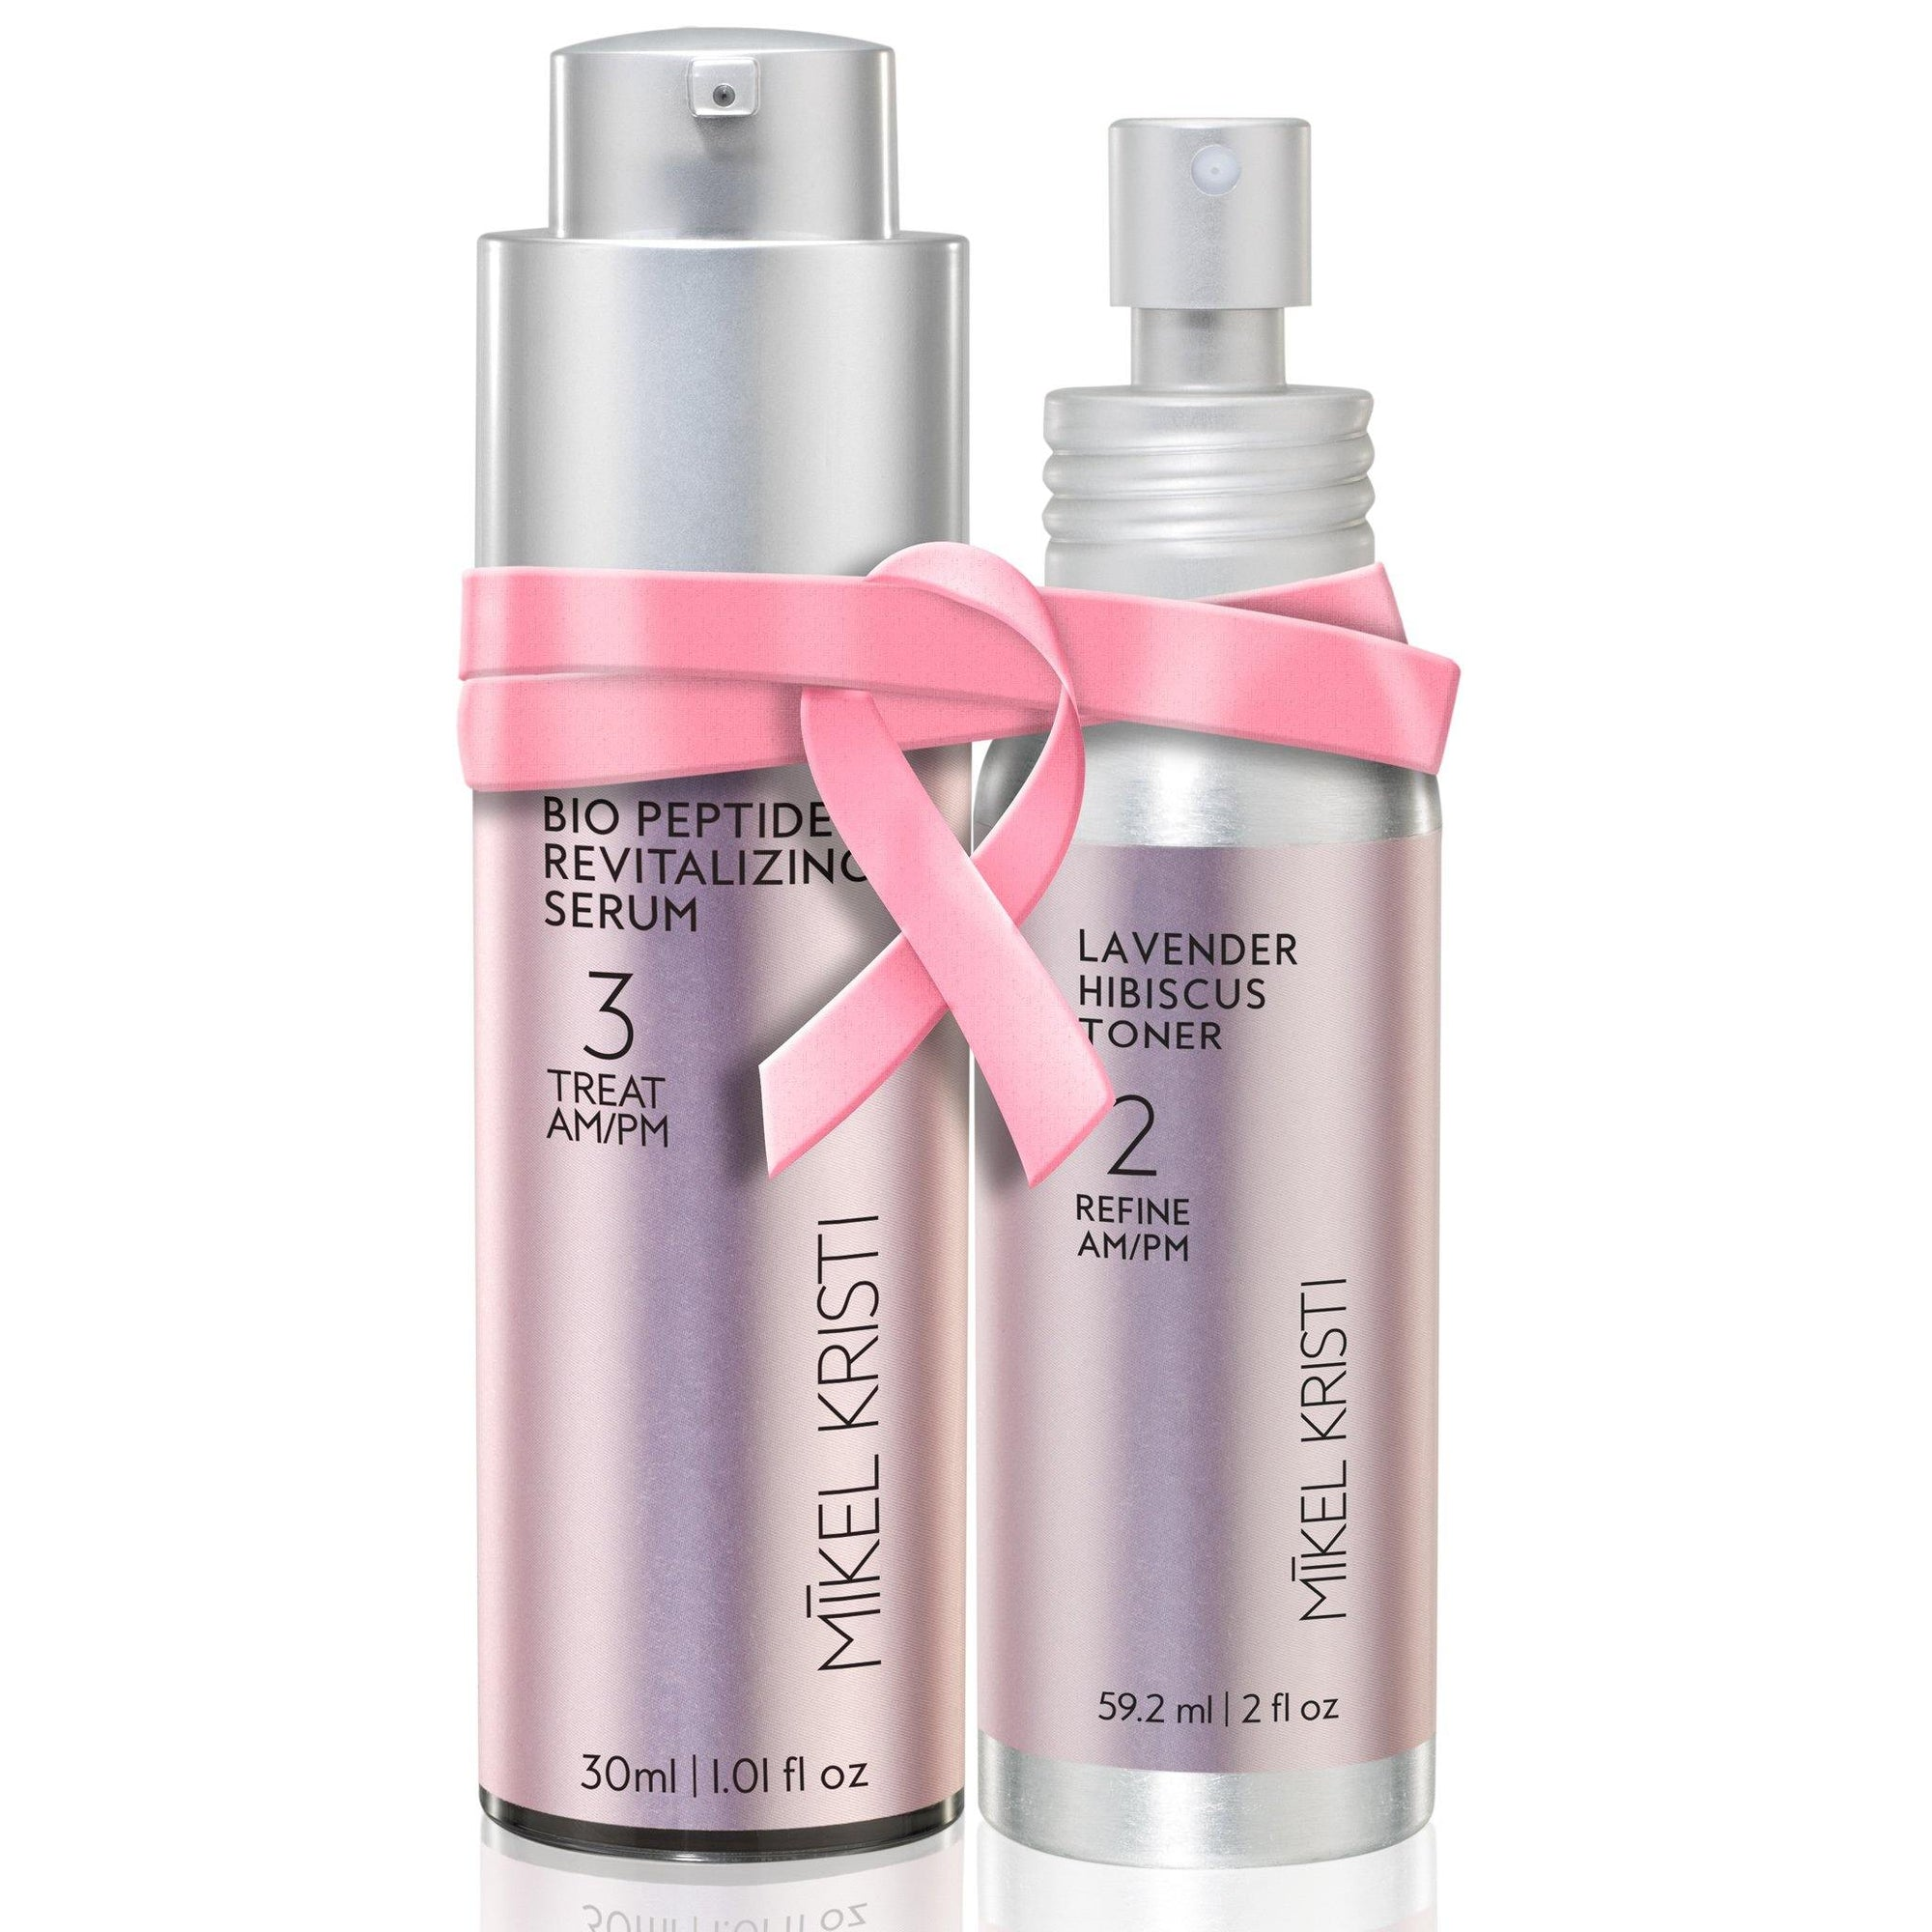 The Pink Collection by Mikel Kristi Skincare